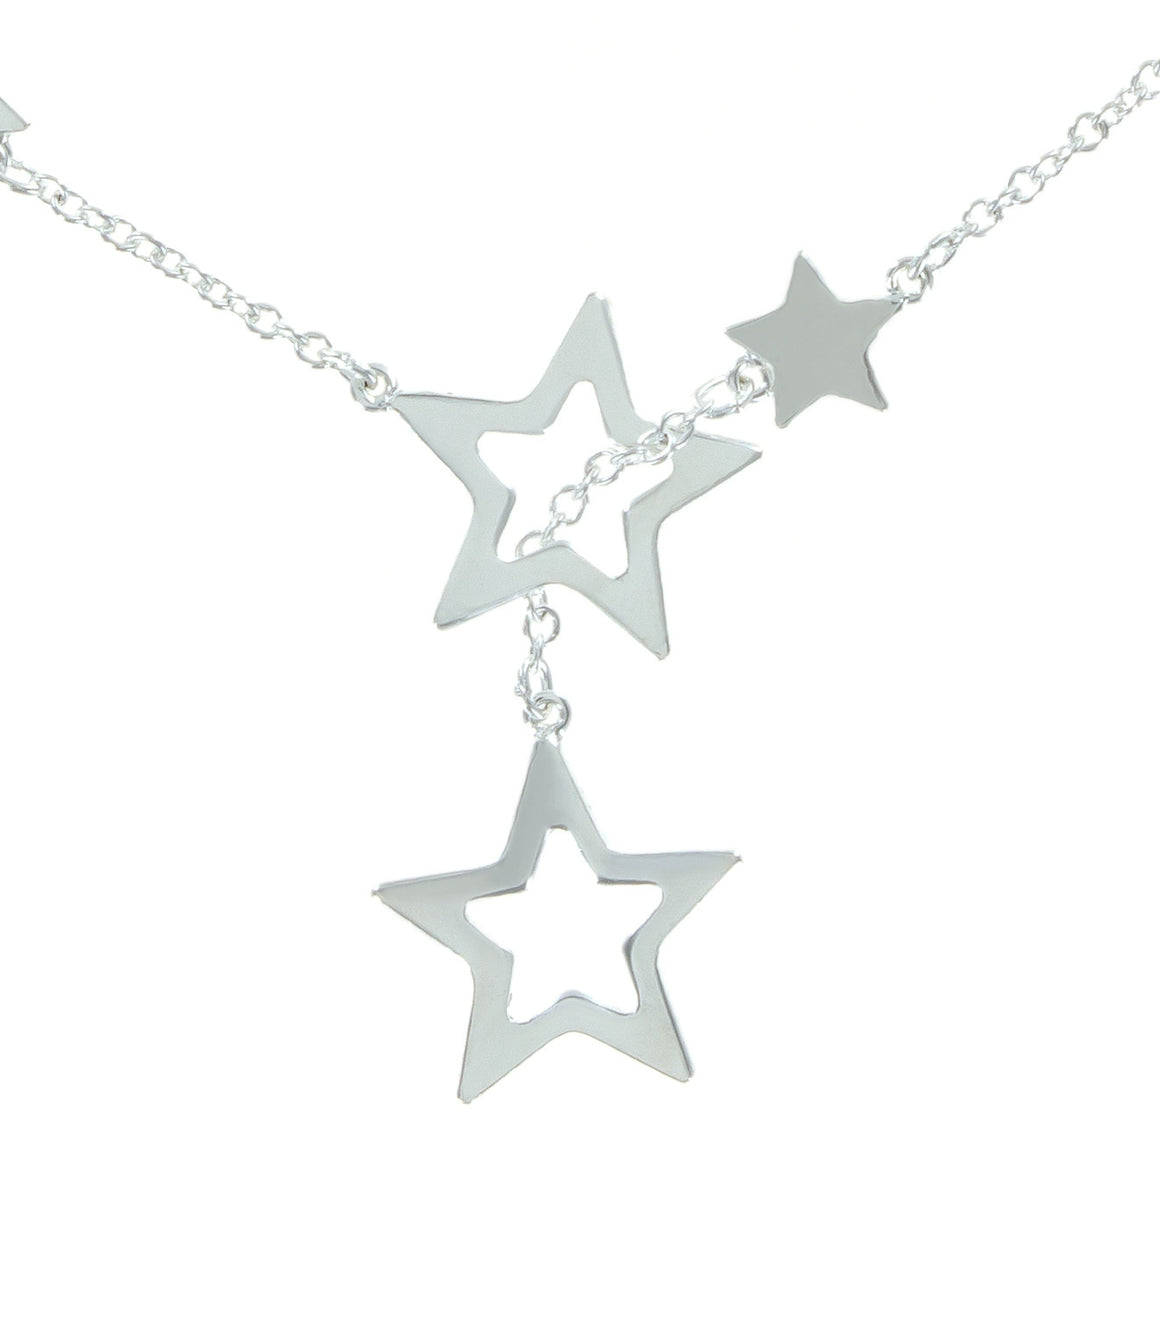 Open cut star sterling silver lariat bracelet with clasp.